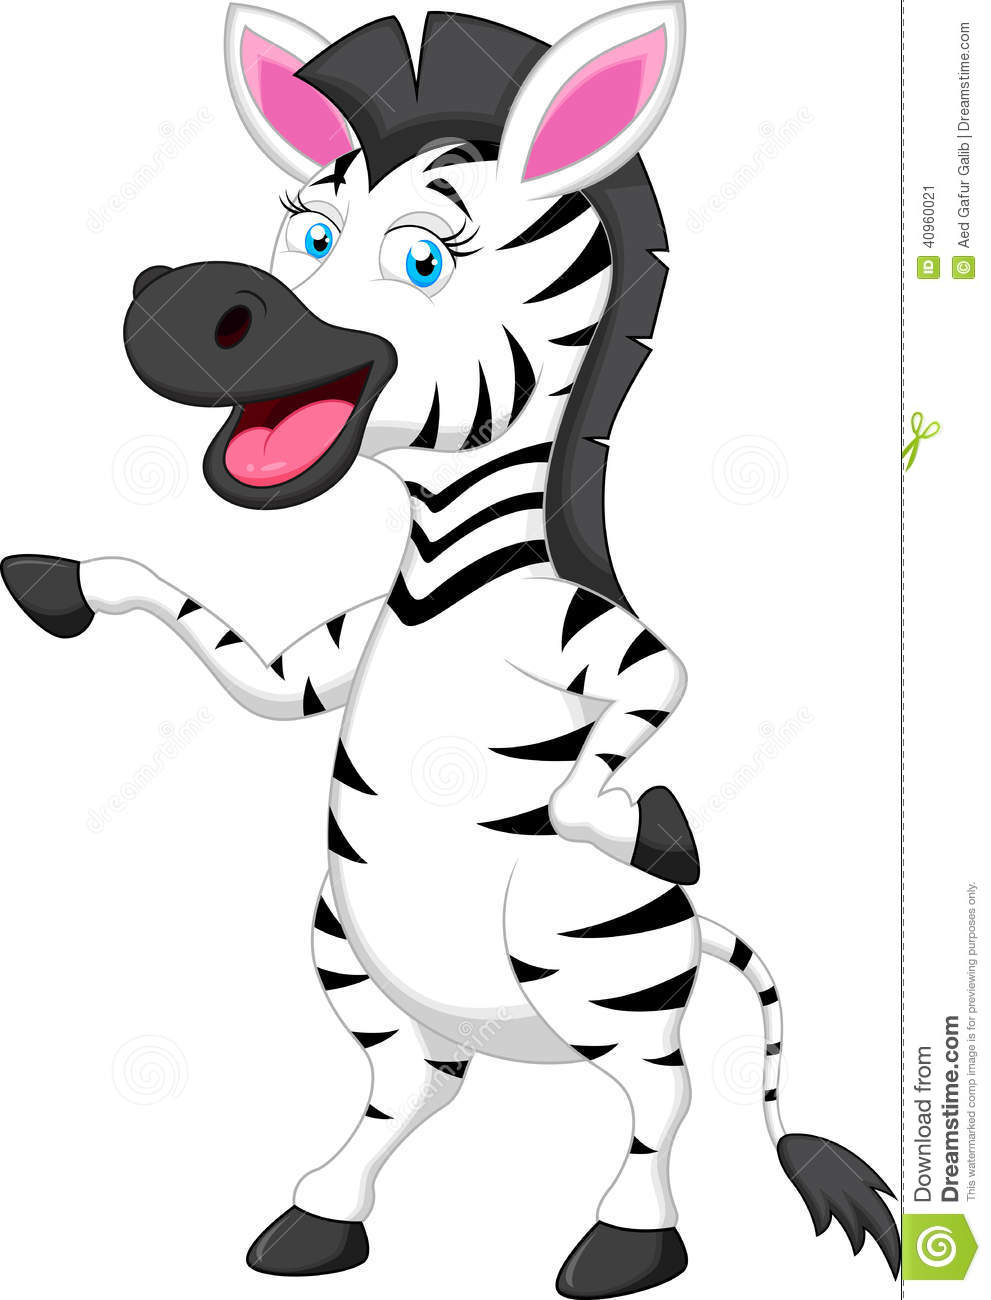 Funny Zebra Cartoon Stock Vector - Image: 40960021